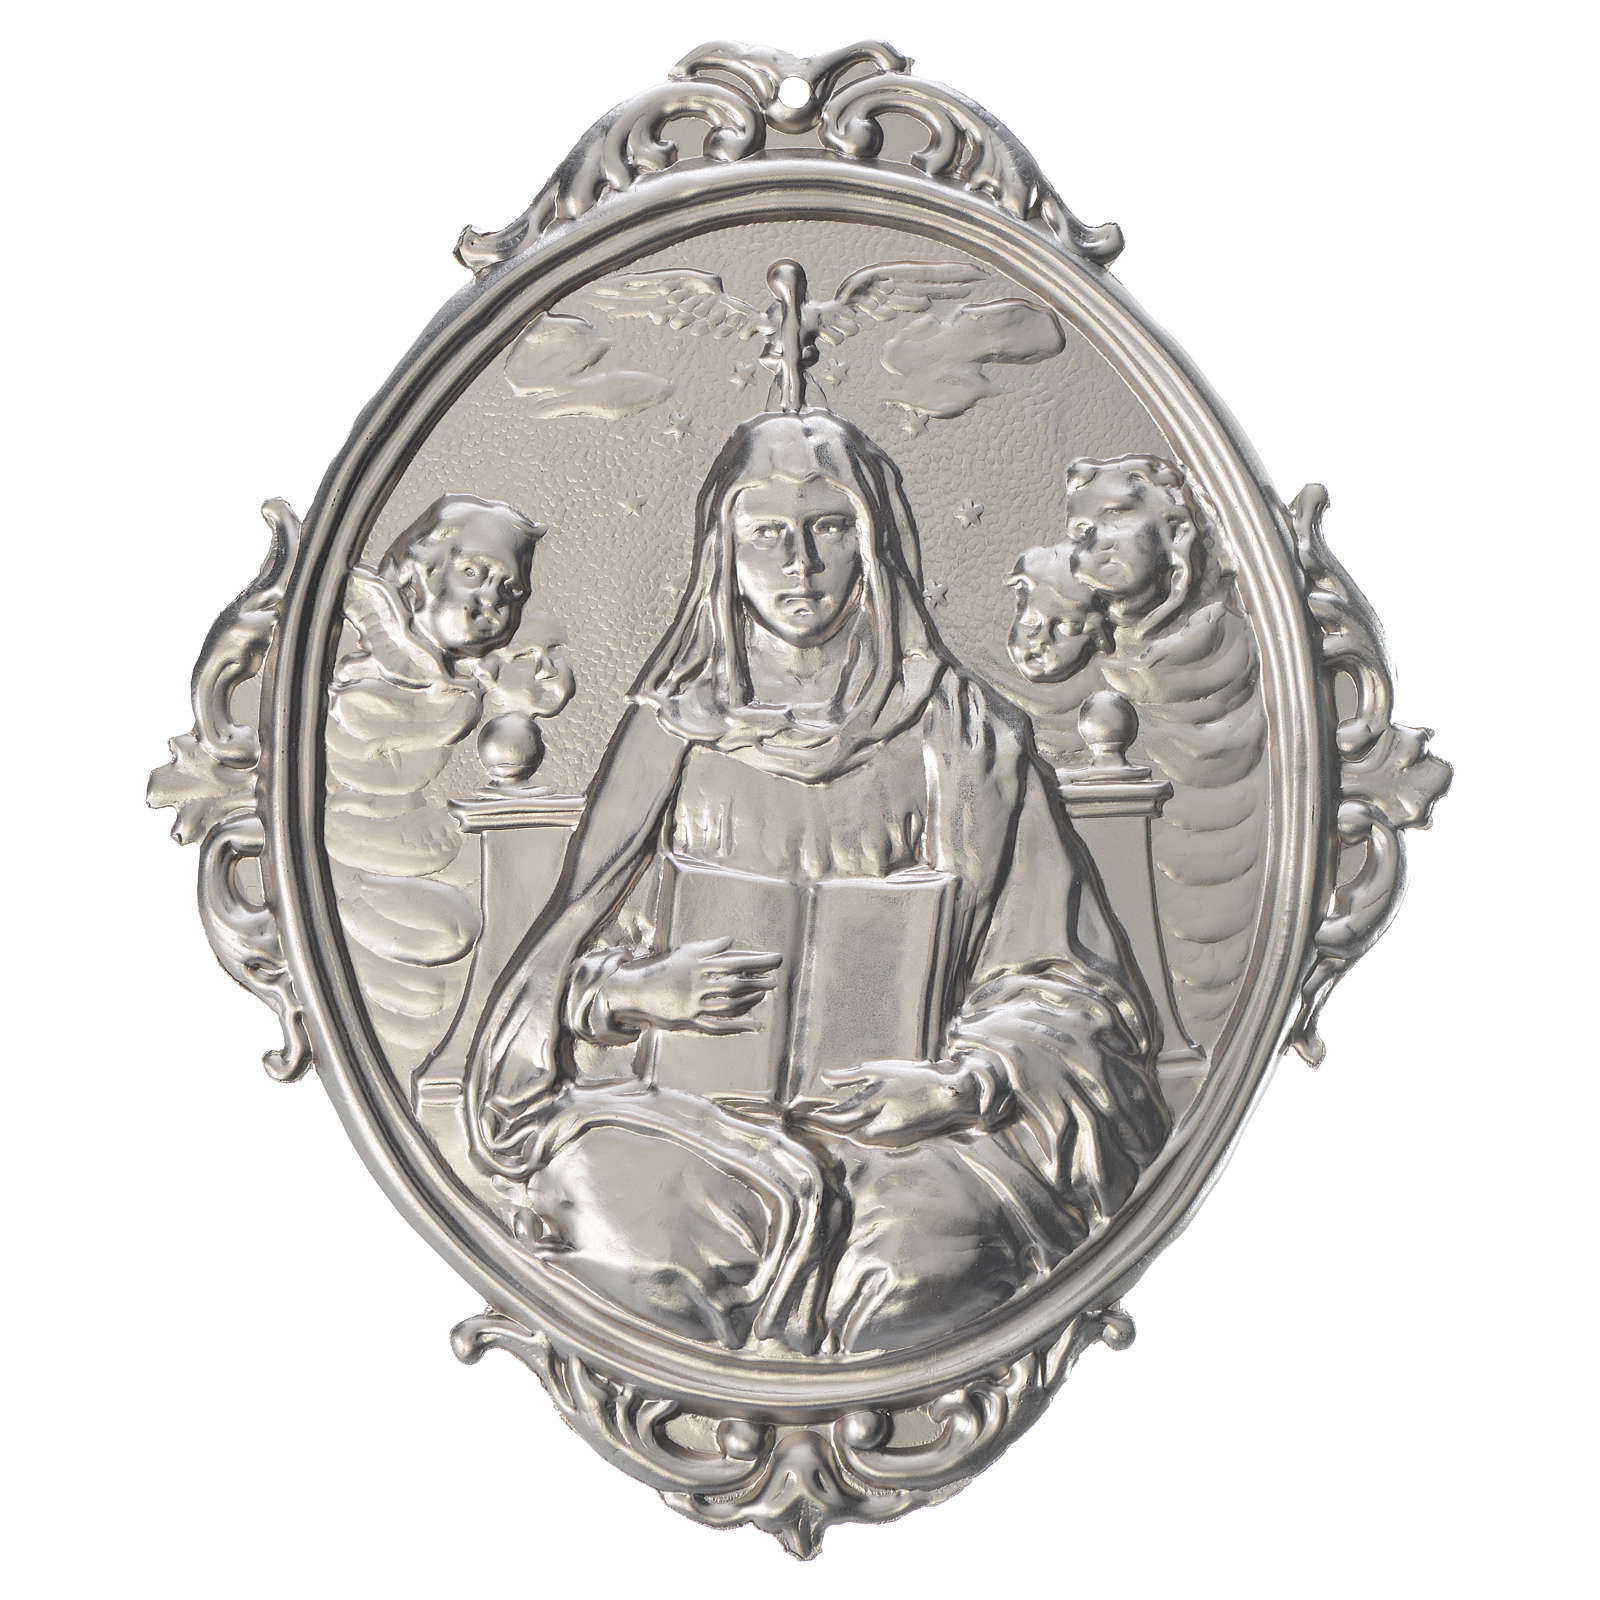 Confraternity Medal, Our Lady with book, monstrance and angels 3